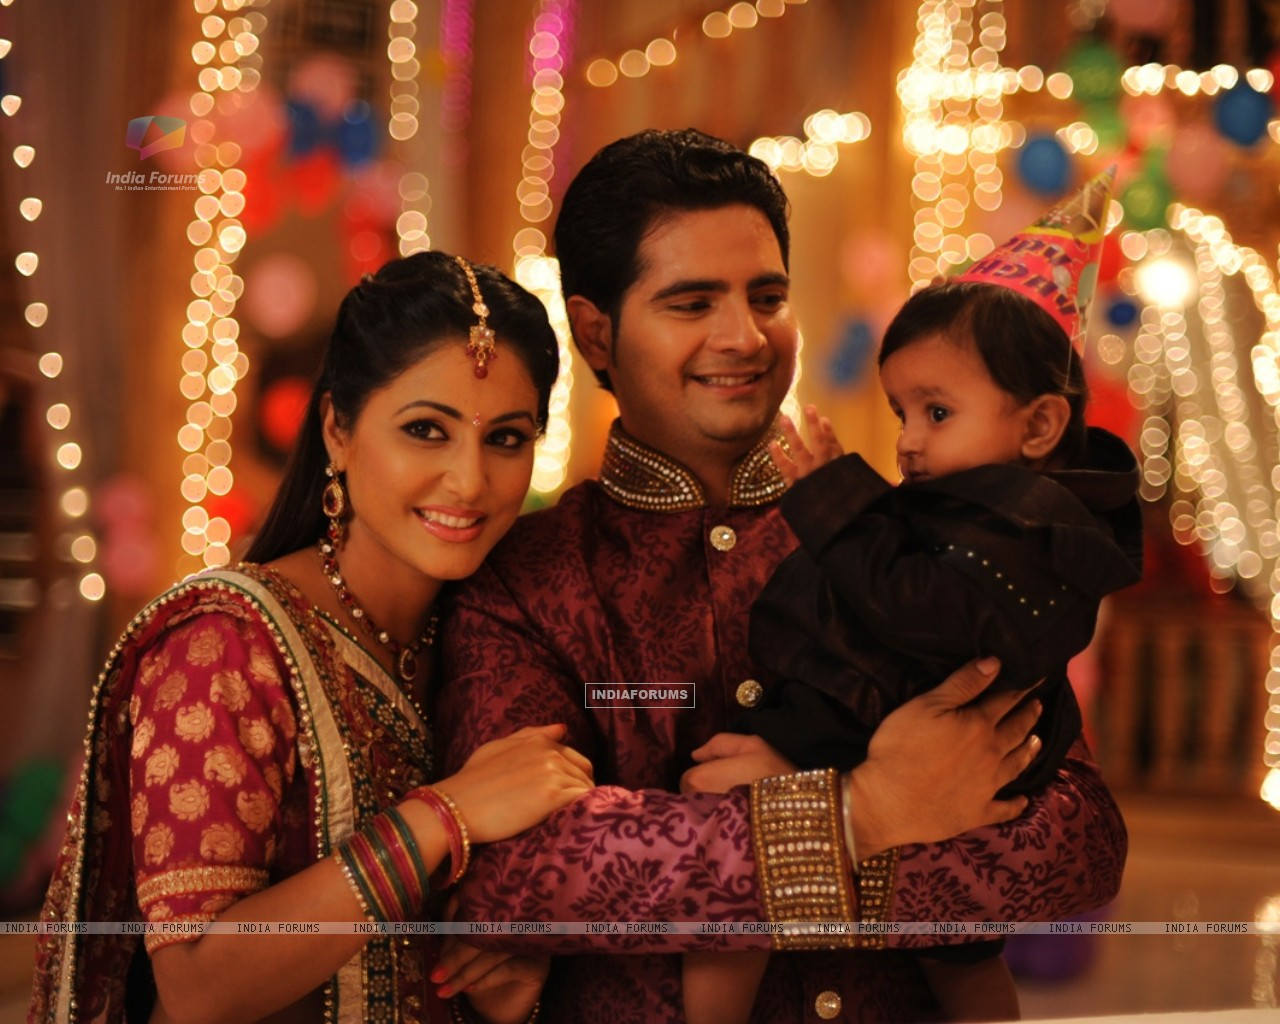 Hina khan and Karan Mehra on the set Yeh Rishta Kya Kehlata Hai (232155) size:1280x1024